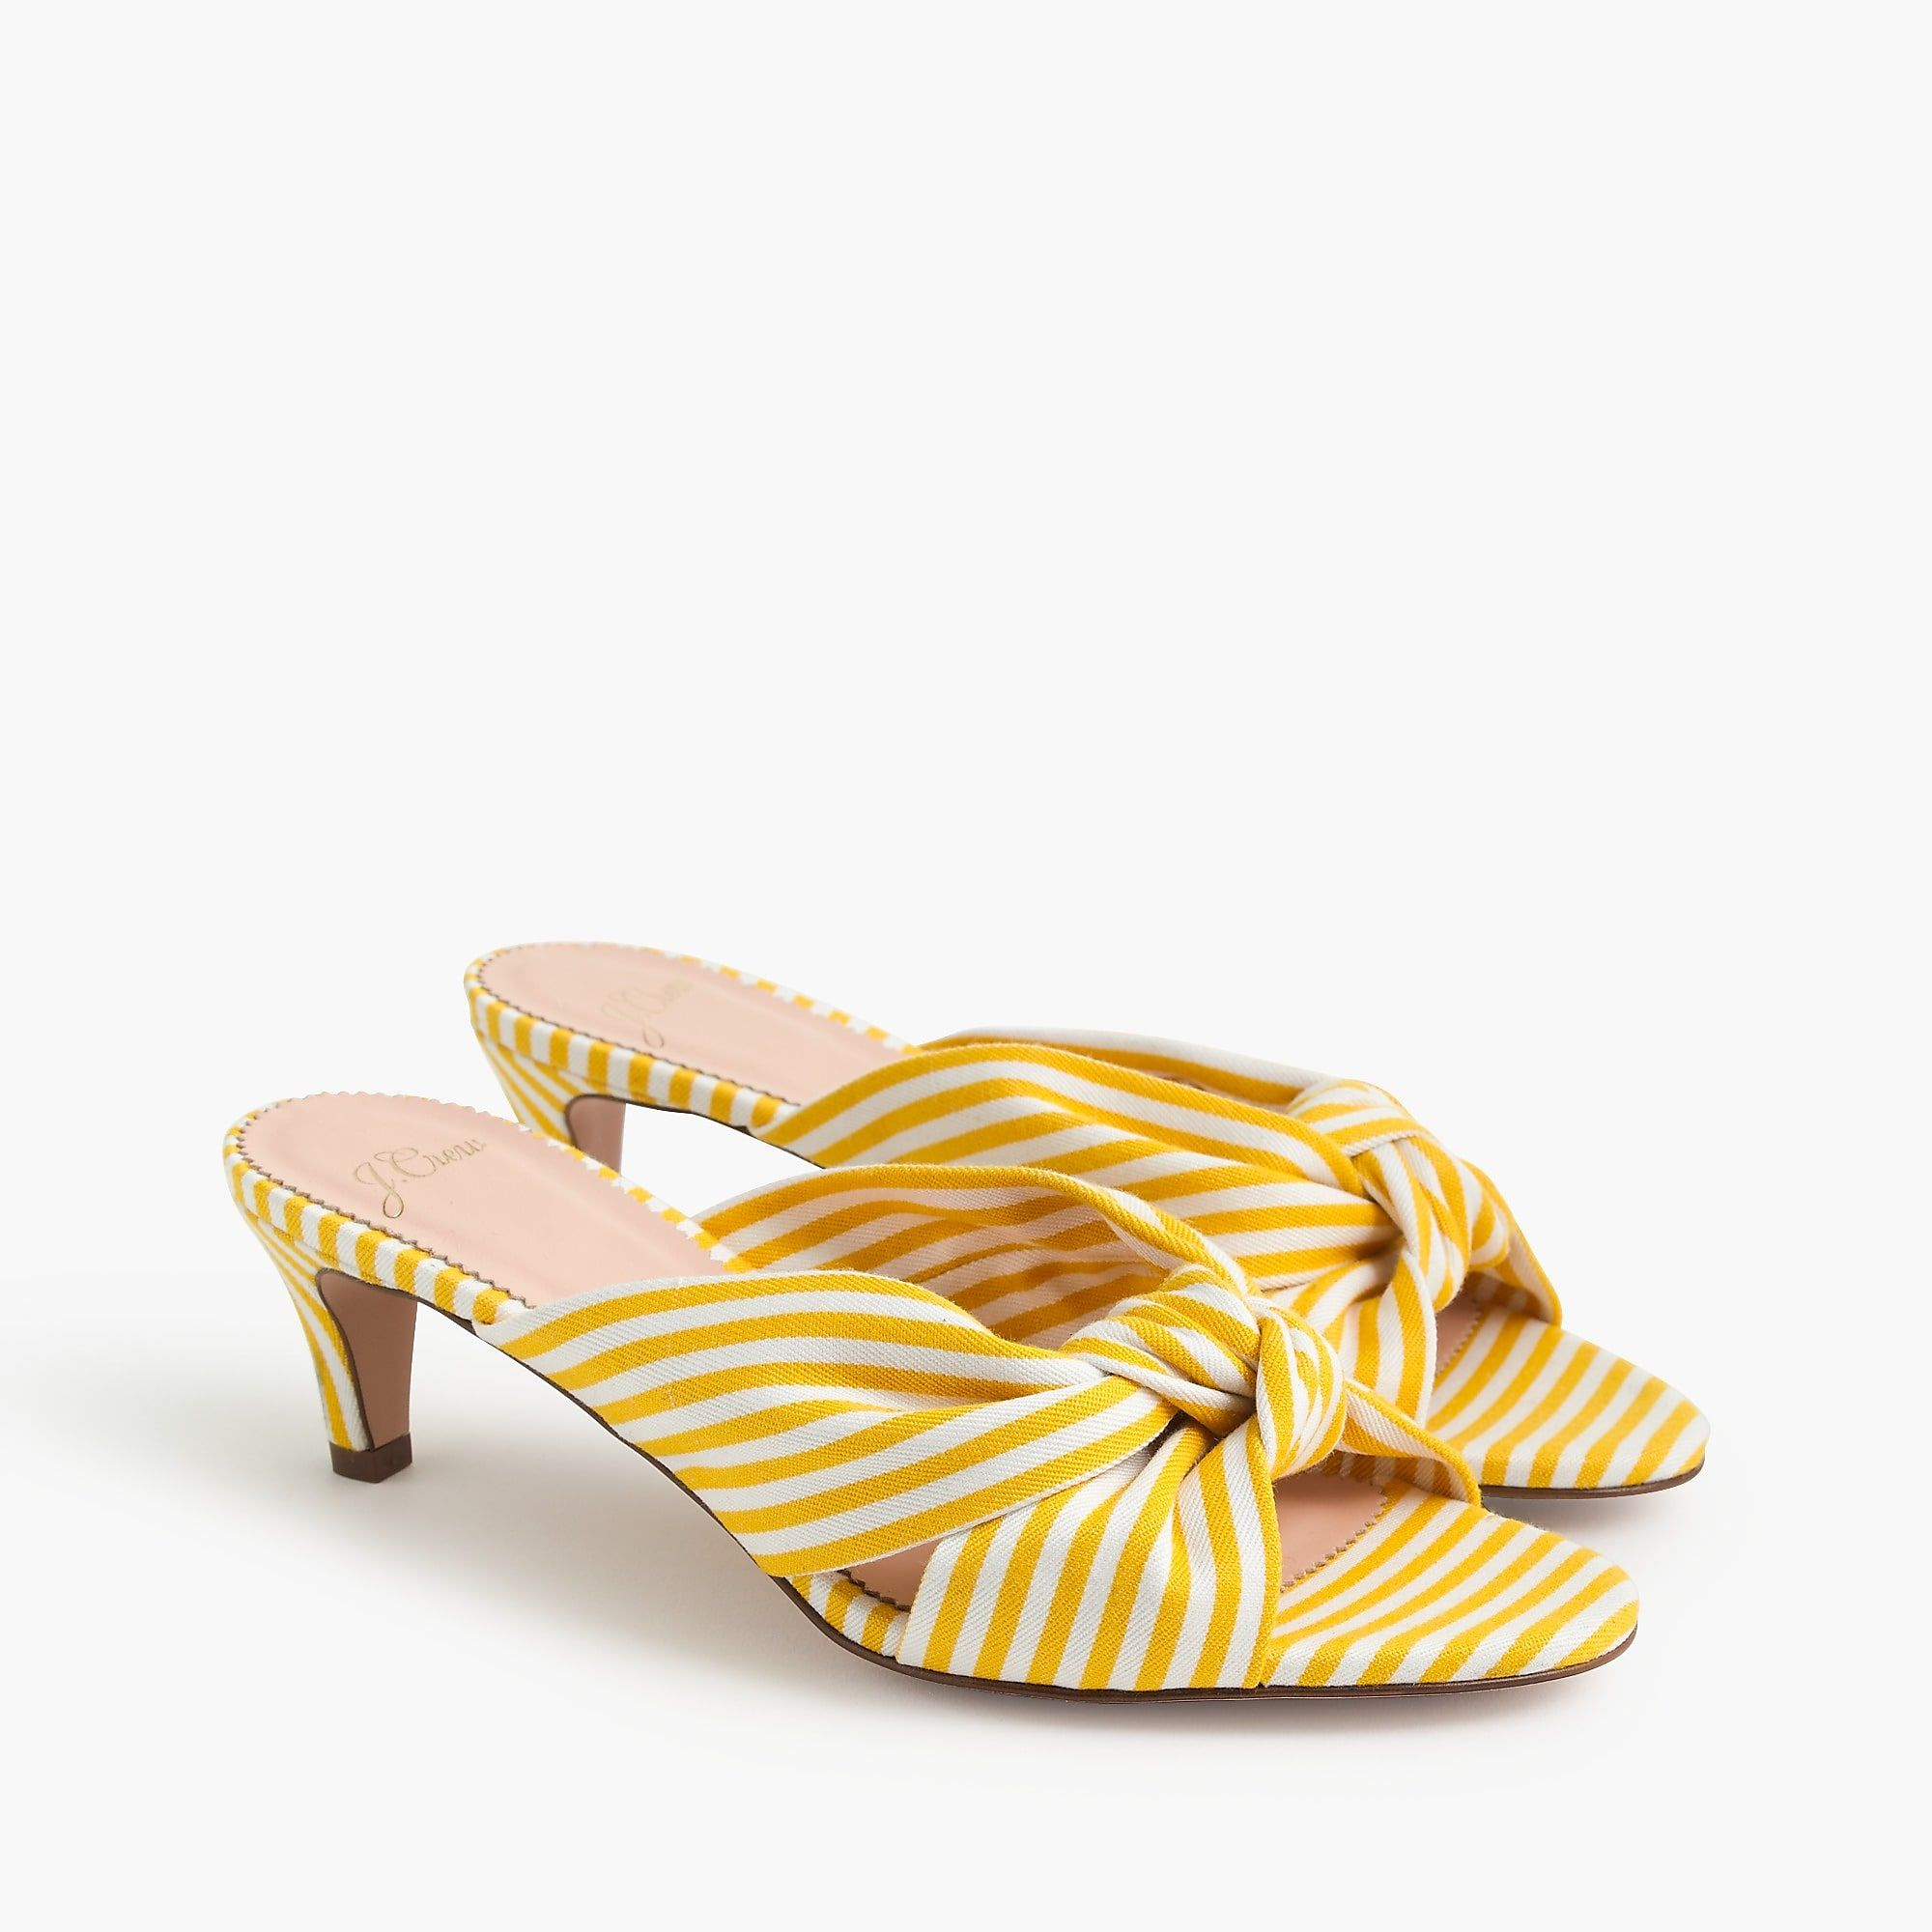 Knotted Kitten Heel Sandals In Stripe For Women Kitten Heel Sandals Kitten Heels Sandals Heels